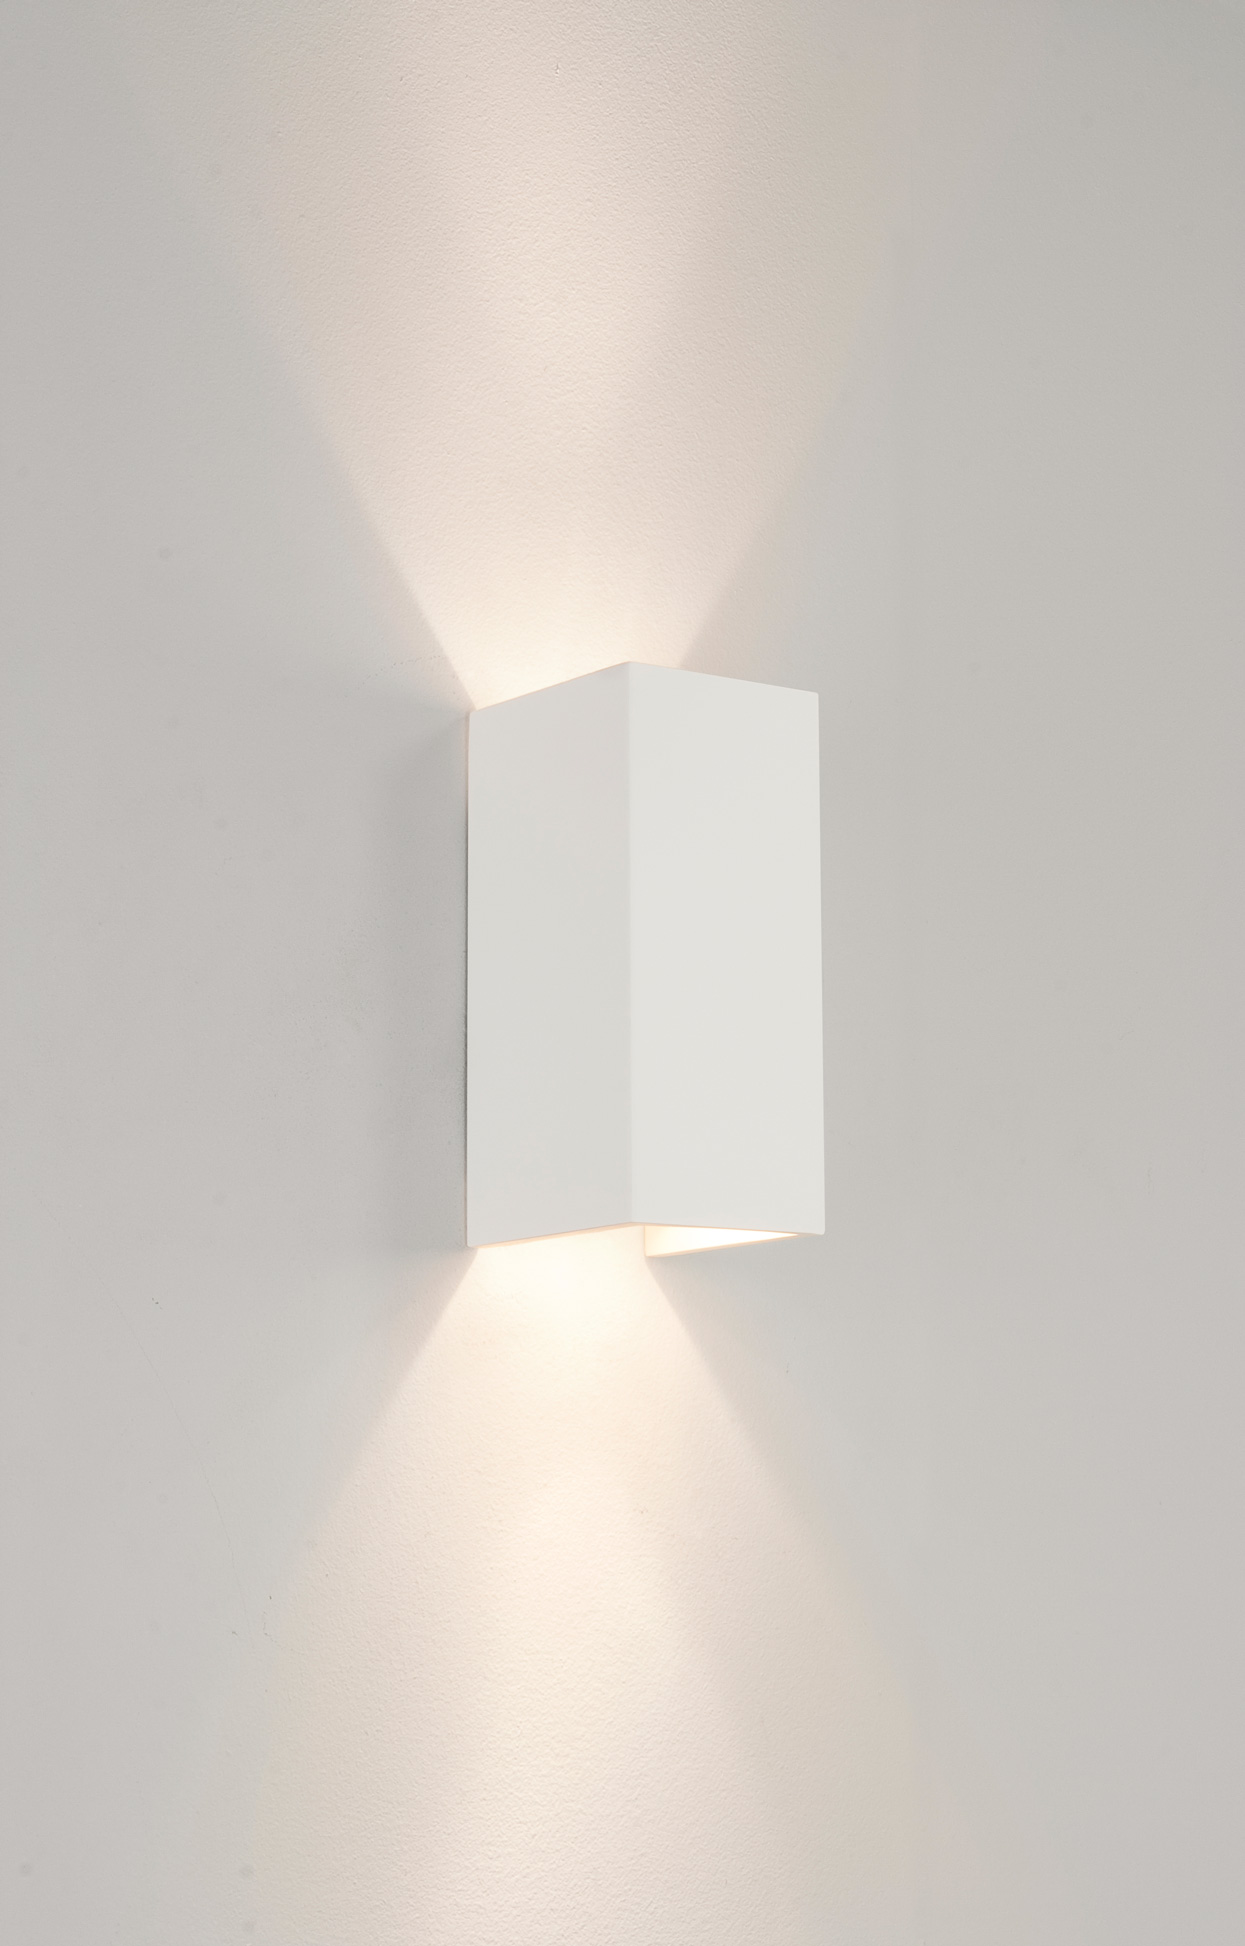 White Dimmable Wall Lights : Astro Parma 210 0964 dimmable 2x50W GU10 rectangular wall light IP20 plaster eBay